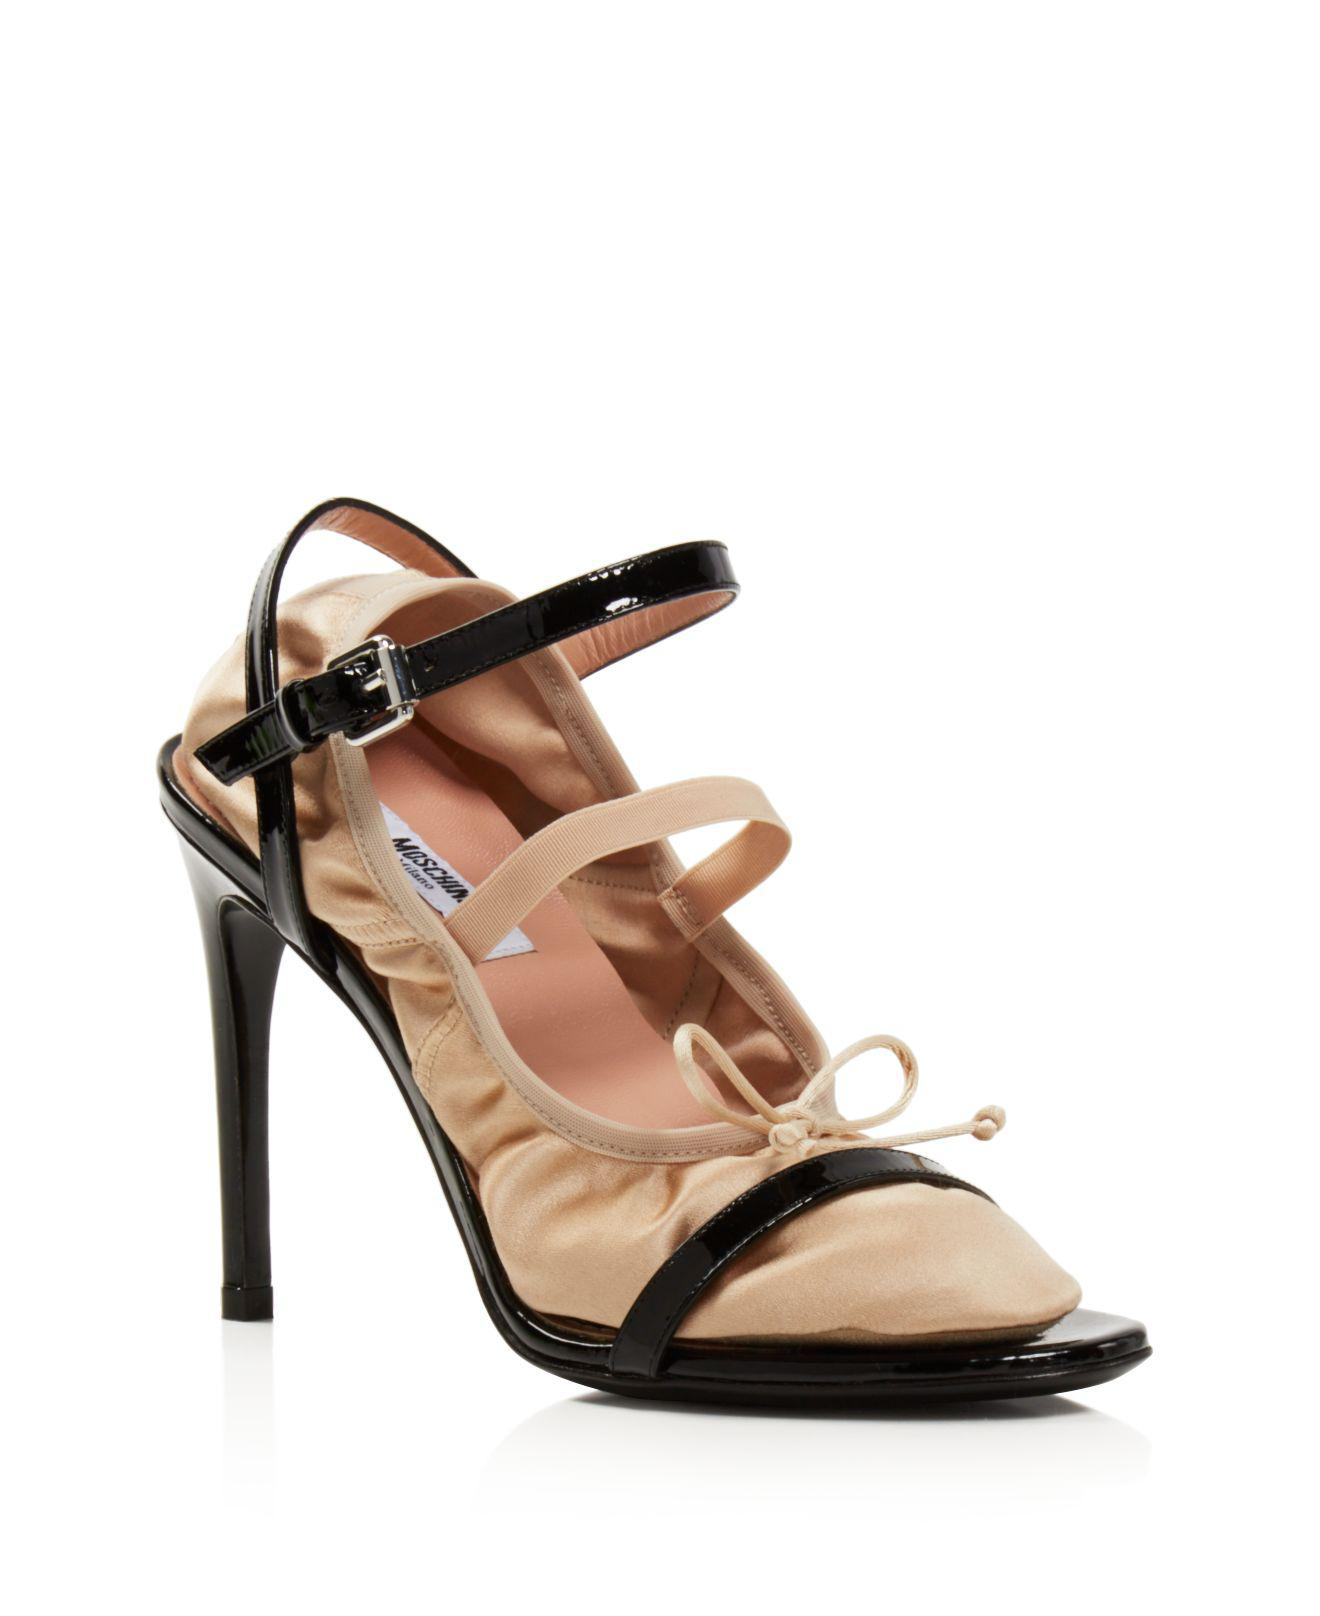 Pre-owned - Patent leather sandal Moschino oXrfrGPbfV